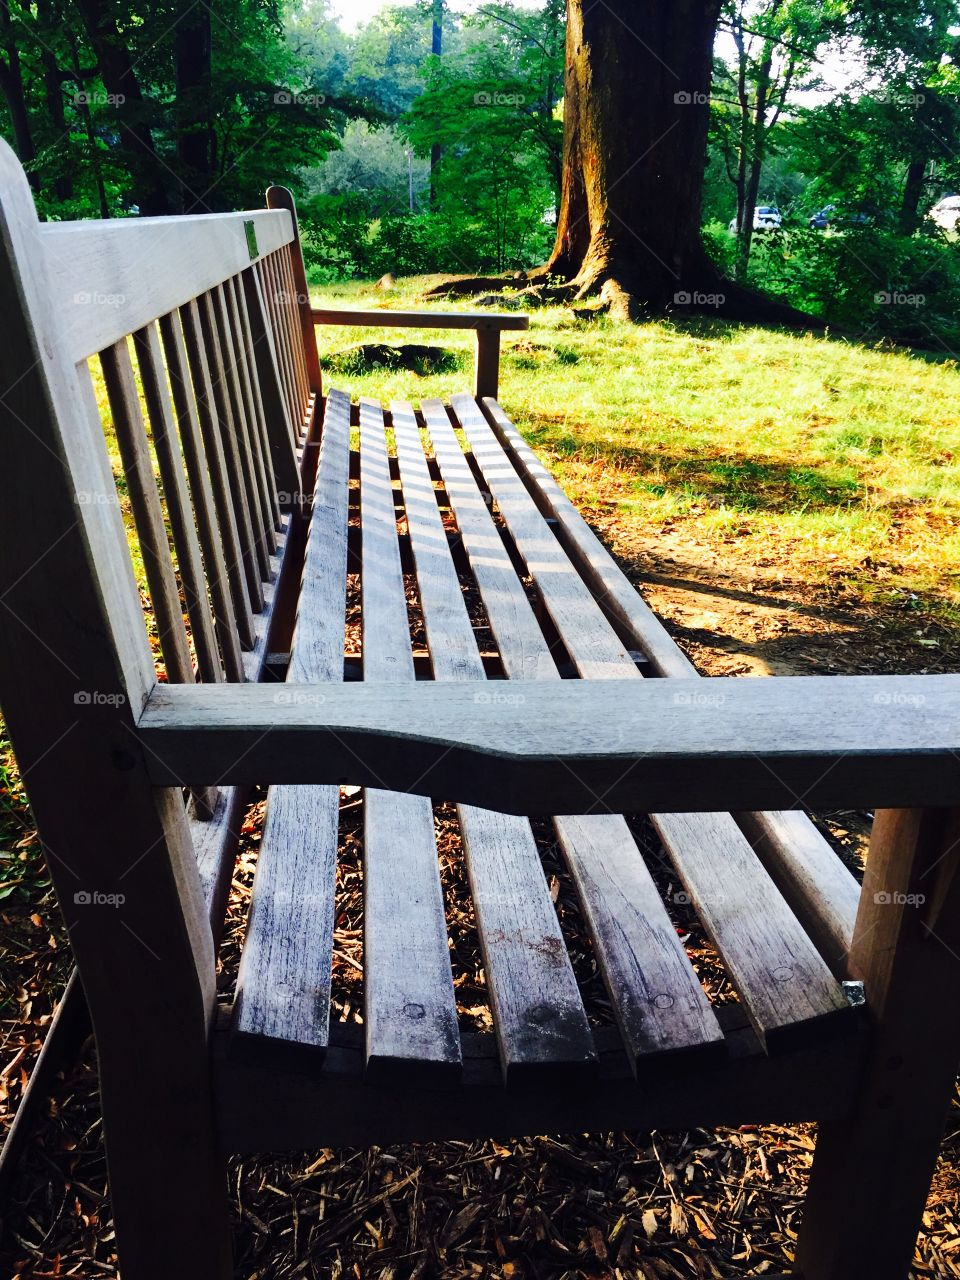 Seated here in contemplations lost, my thought discovers vaster space beyond, supernal silence and unfathomed peace.